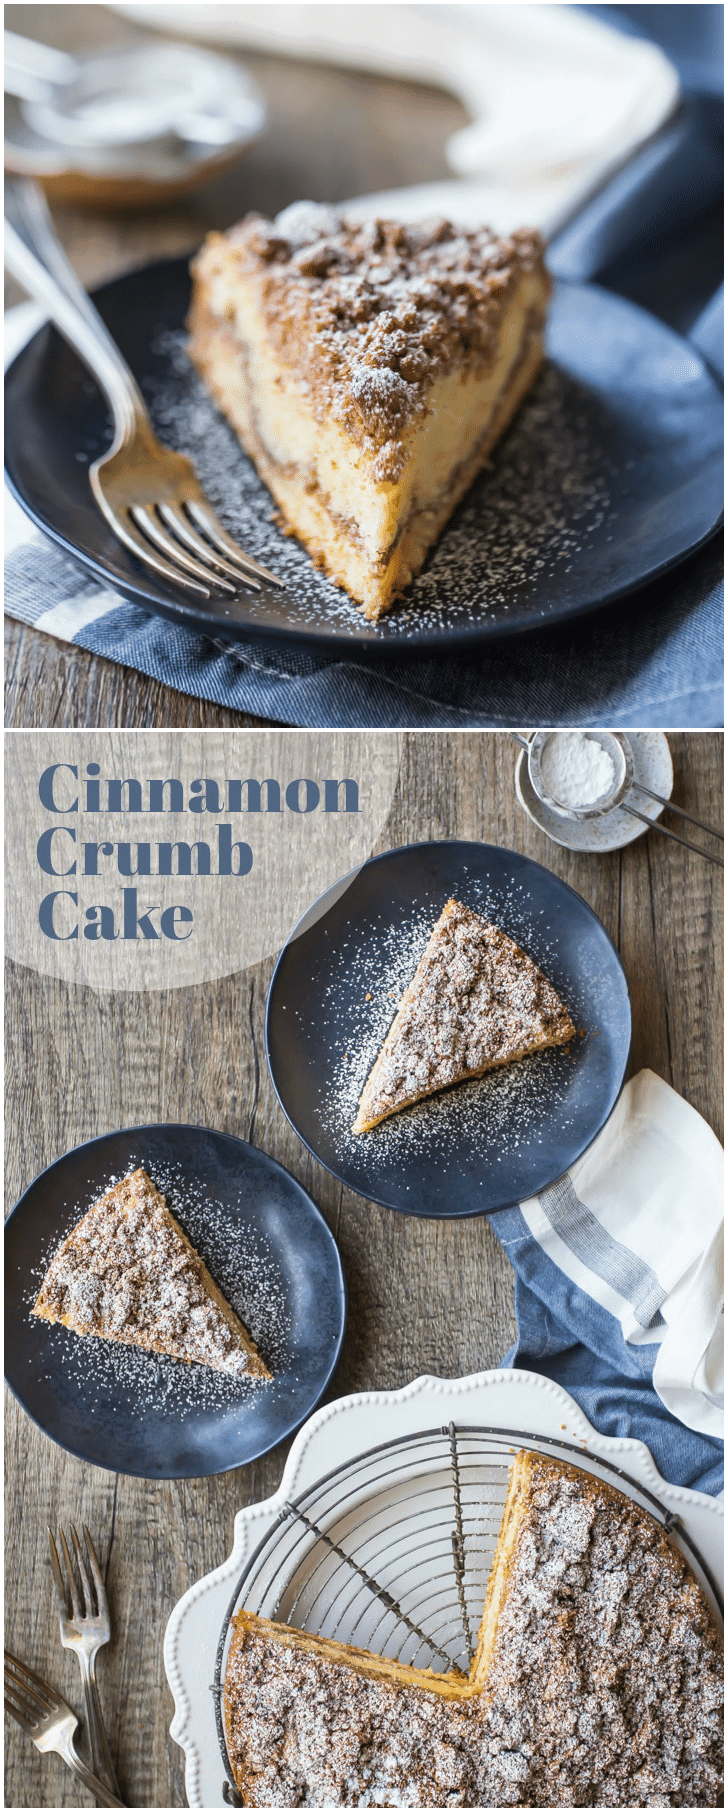 This cinnamon crumb cake was amazing!  The sour cream cake was so moist and there was TONS of crumbly cinnamon brown sugar streusel.  I served it with coffee and everyone raved!  #cinnamon #crumbcake #coffeecake #cake #desserts #sourcream #moist #baking